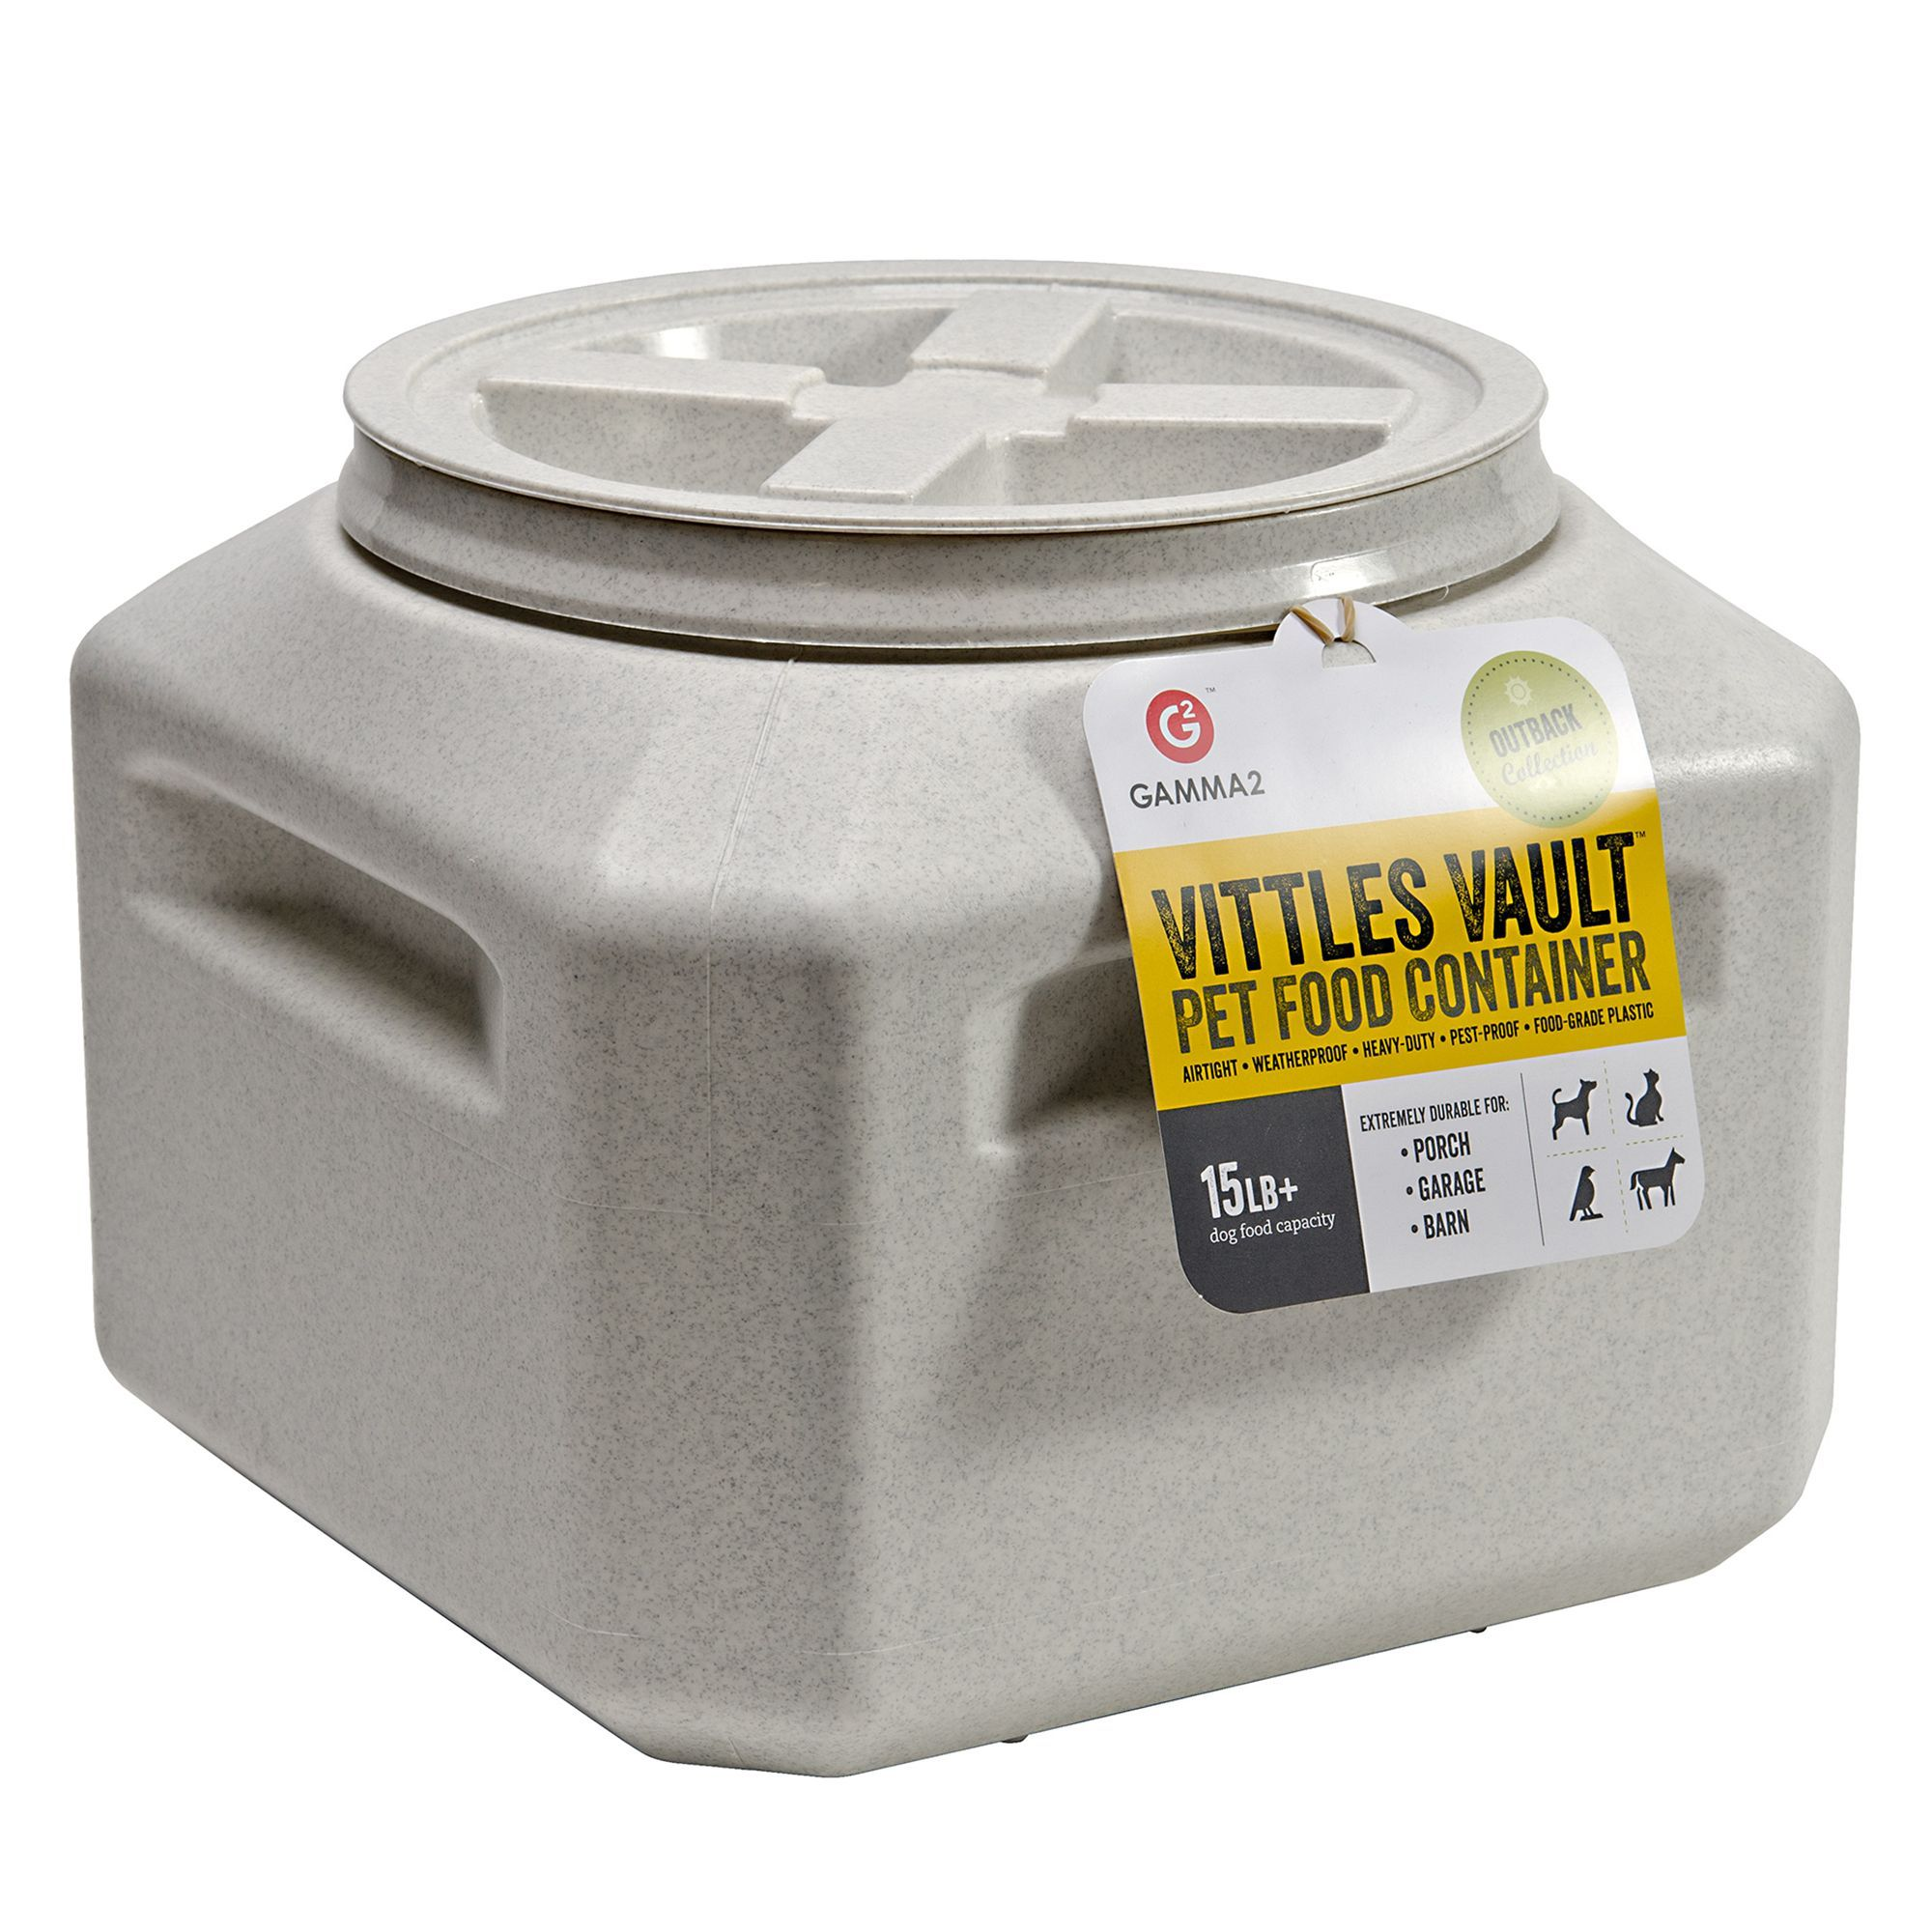 Vittles Vault By Gamma2 Outback Pet Food Container Size 15 Lb